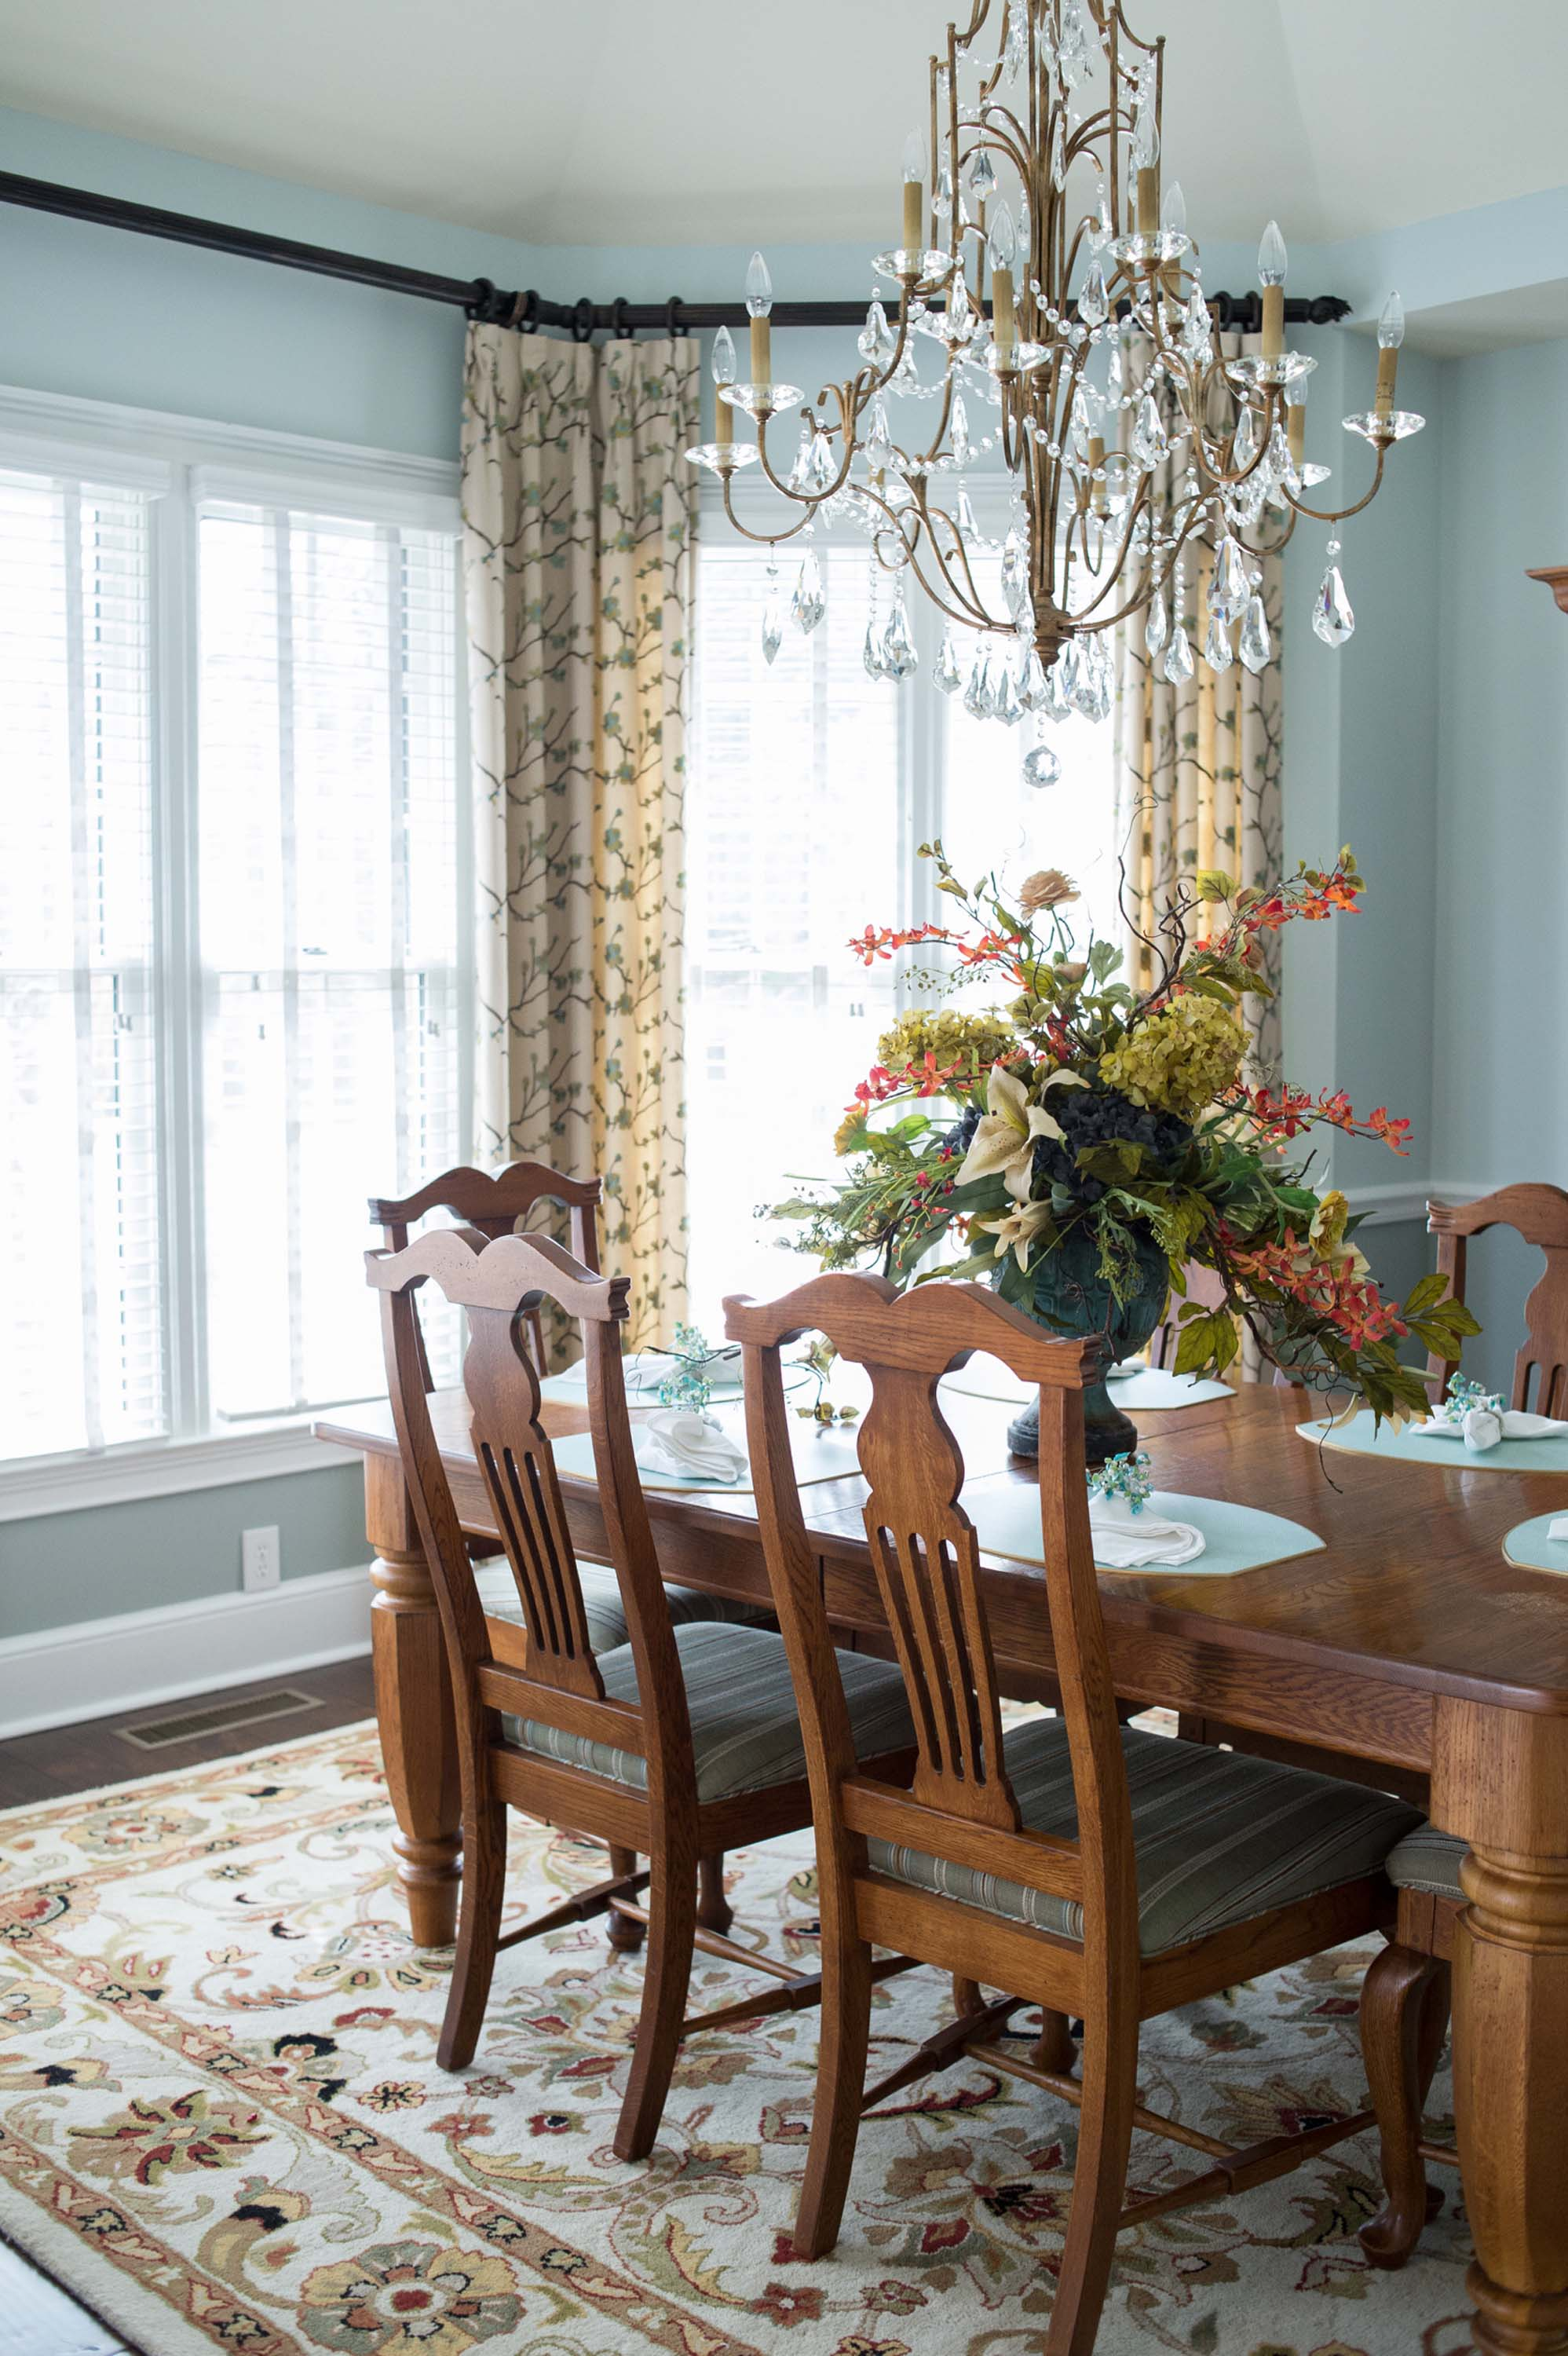 Custom Dining Room Window Treatments with Chandelier, Large Area Rug and Floral Centerpiece